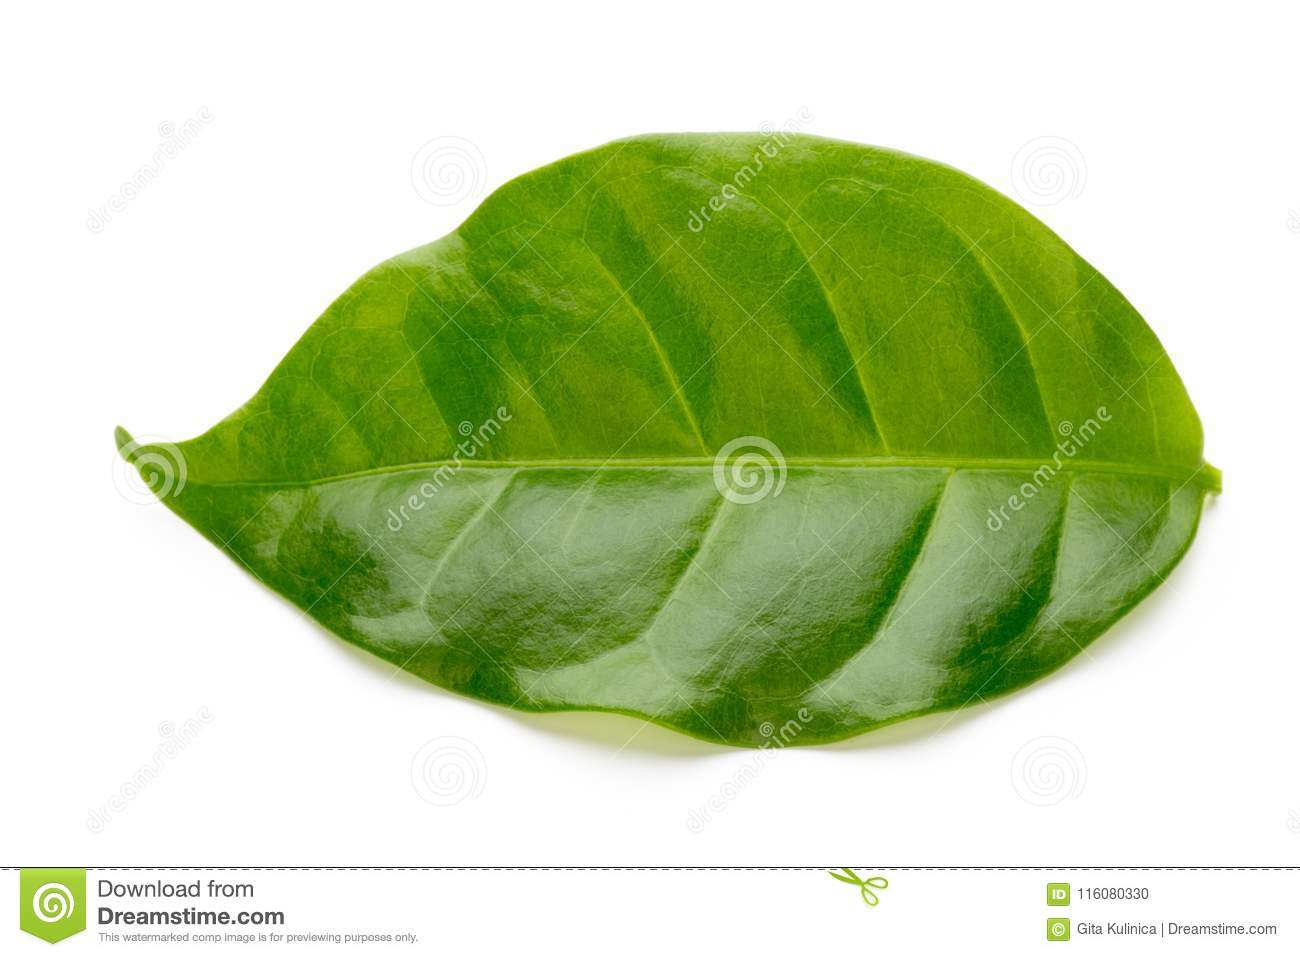 Green tea leaf isolated on white background.